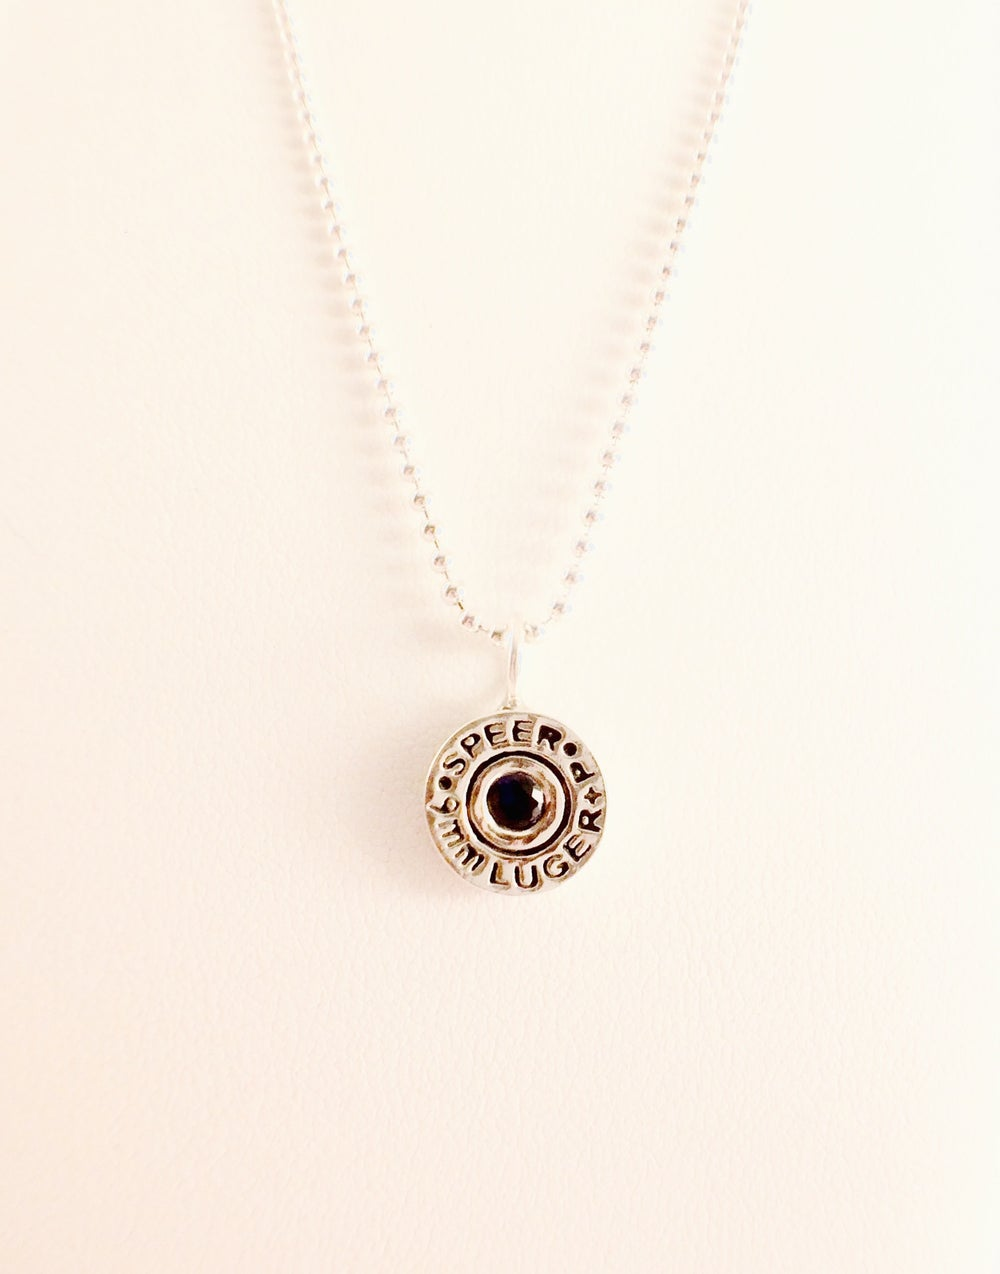 Image of 9mm SPEER Gold Dot Pendant Necklace